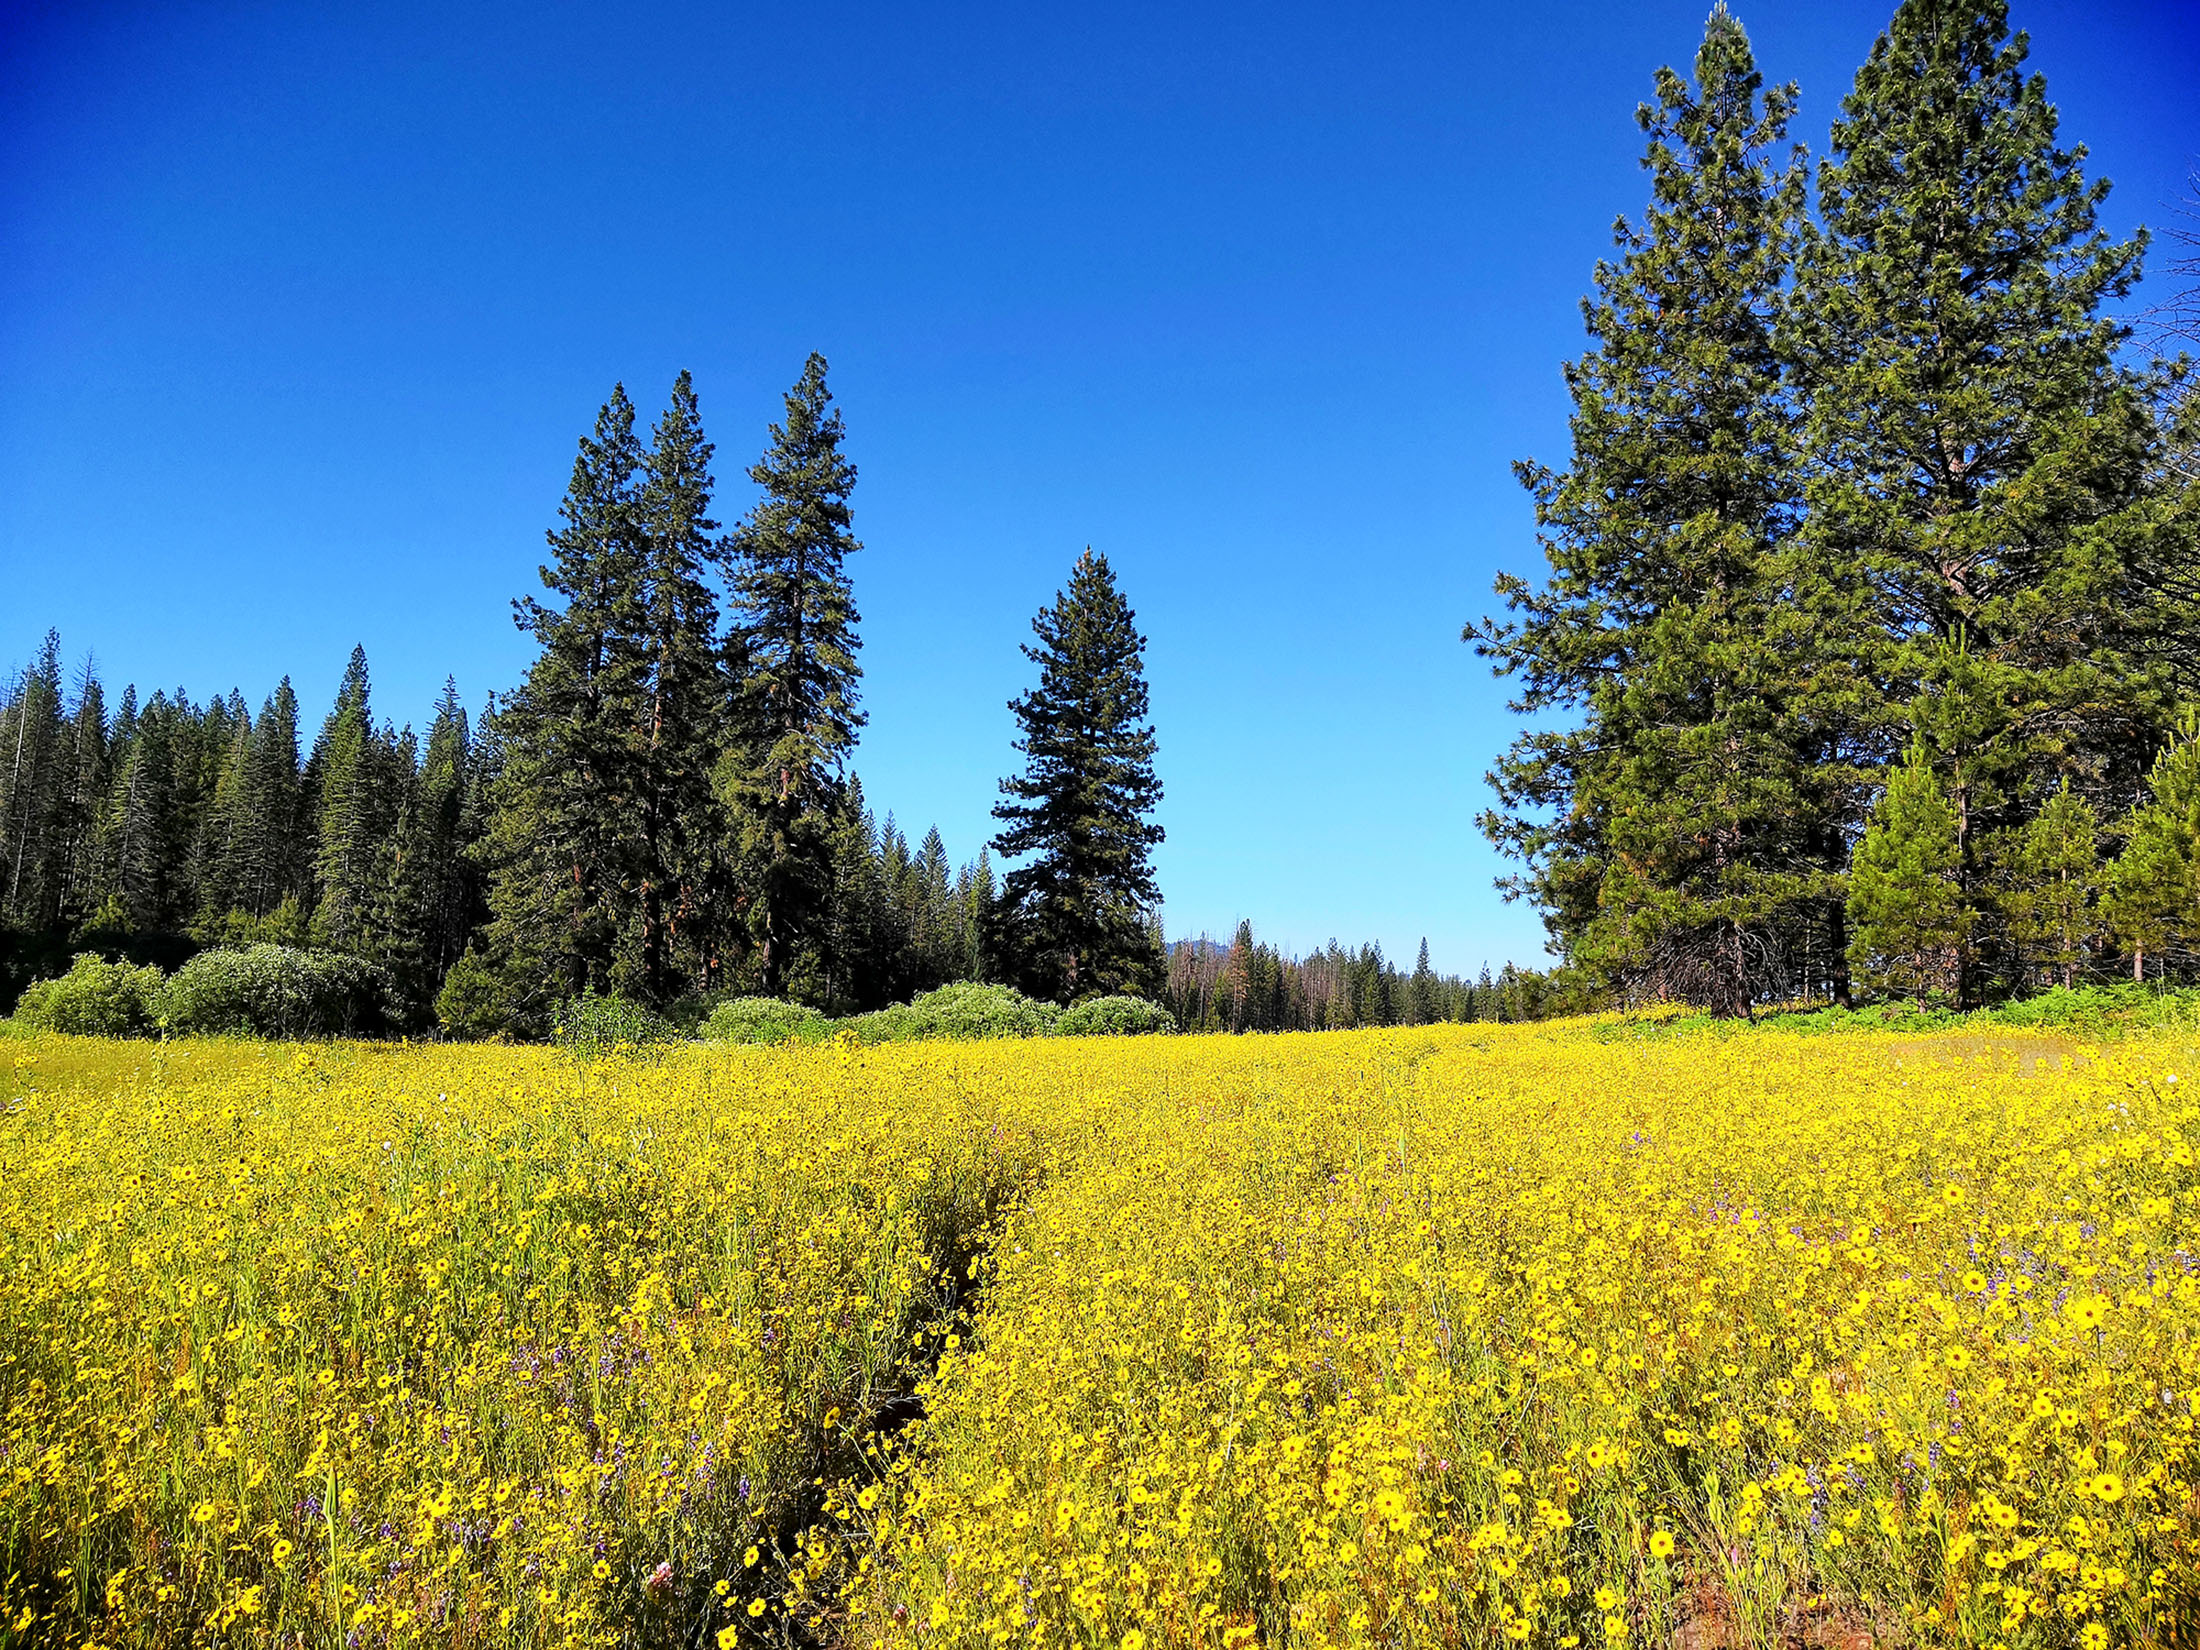 Summer wildflowers at Ackerson Meadow.